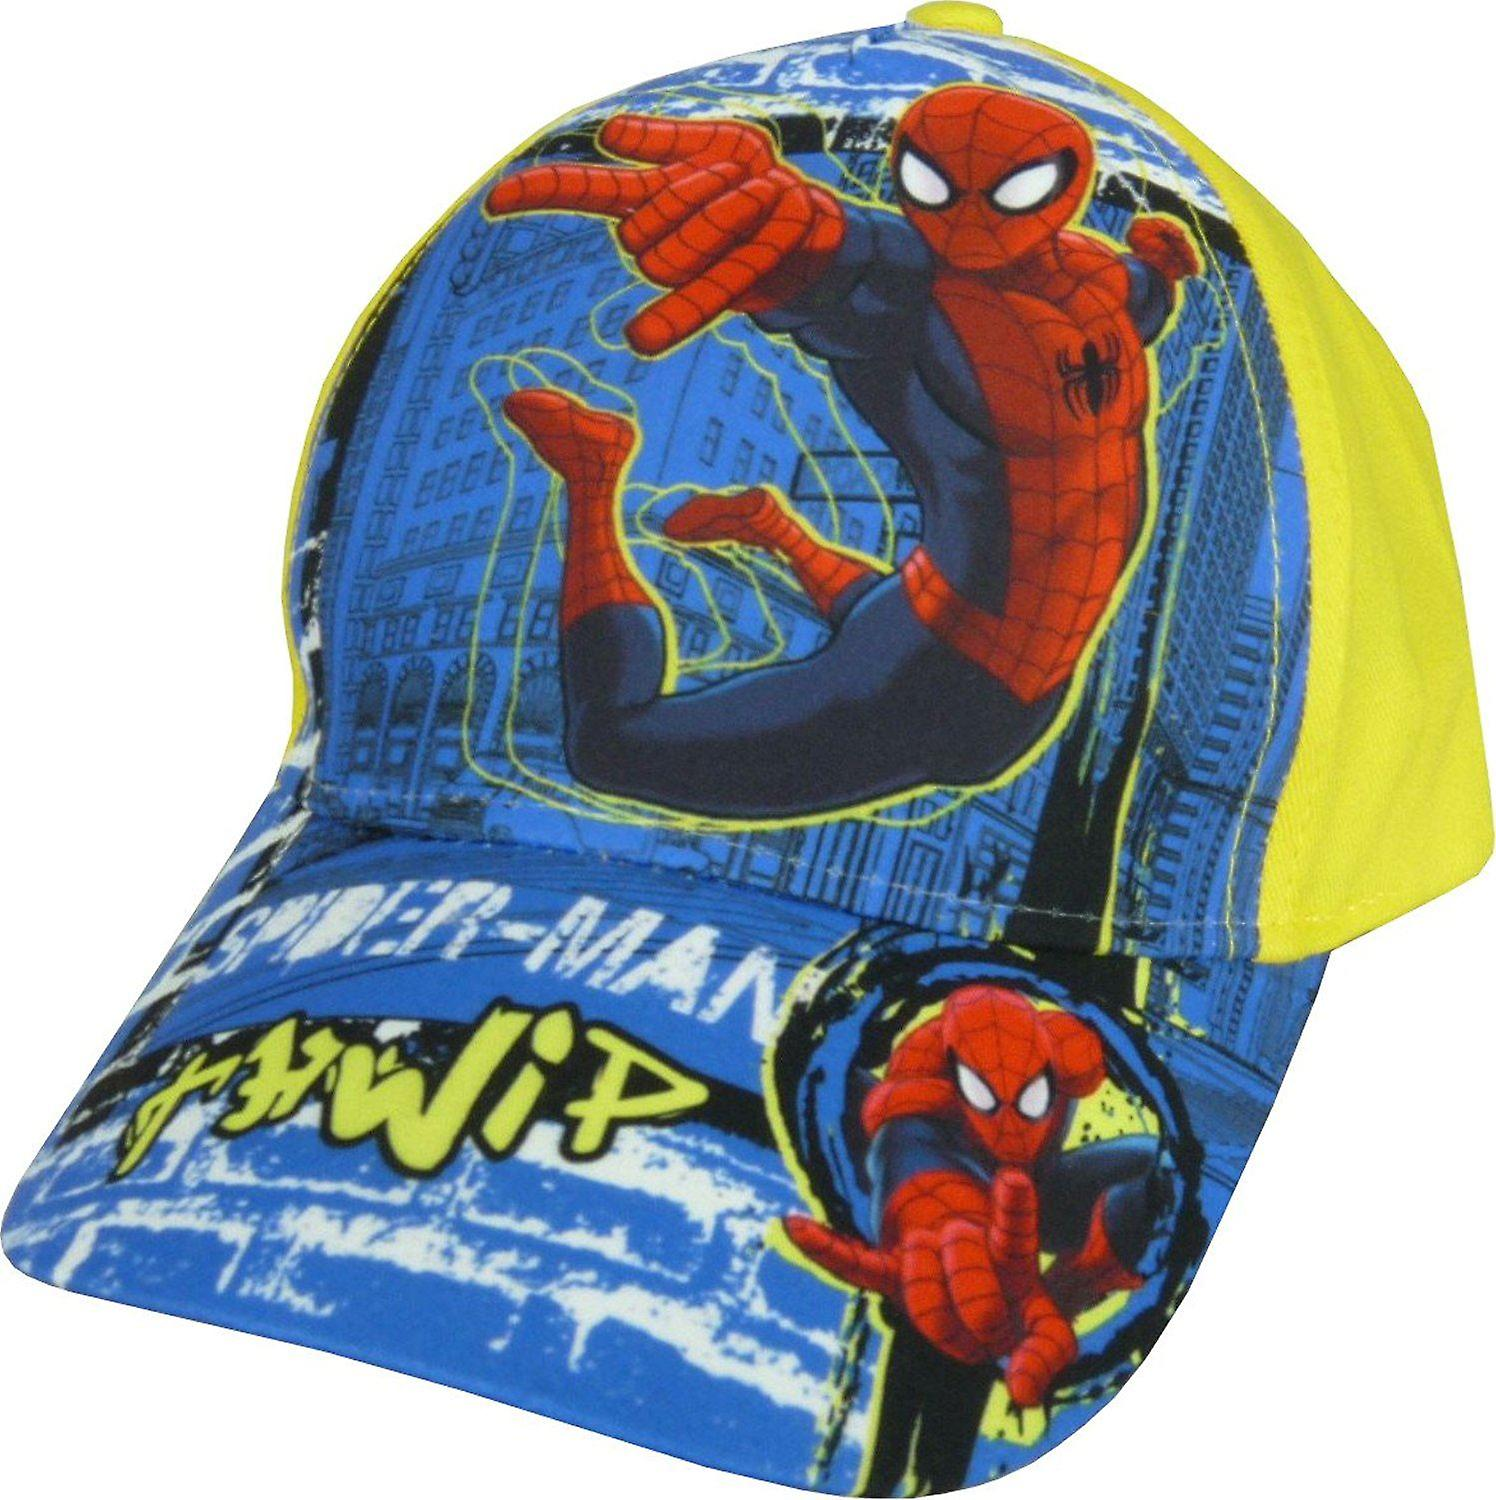 6fd20271f6ee7a Boys Marvel Spiderman Baseball Cap Hat with Adjustable Back | Fruugo